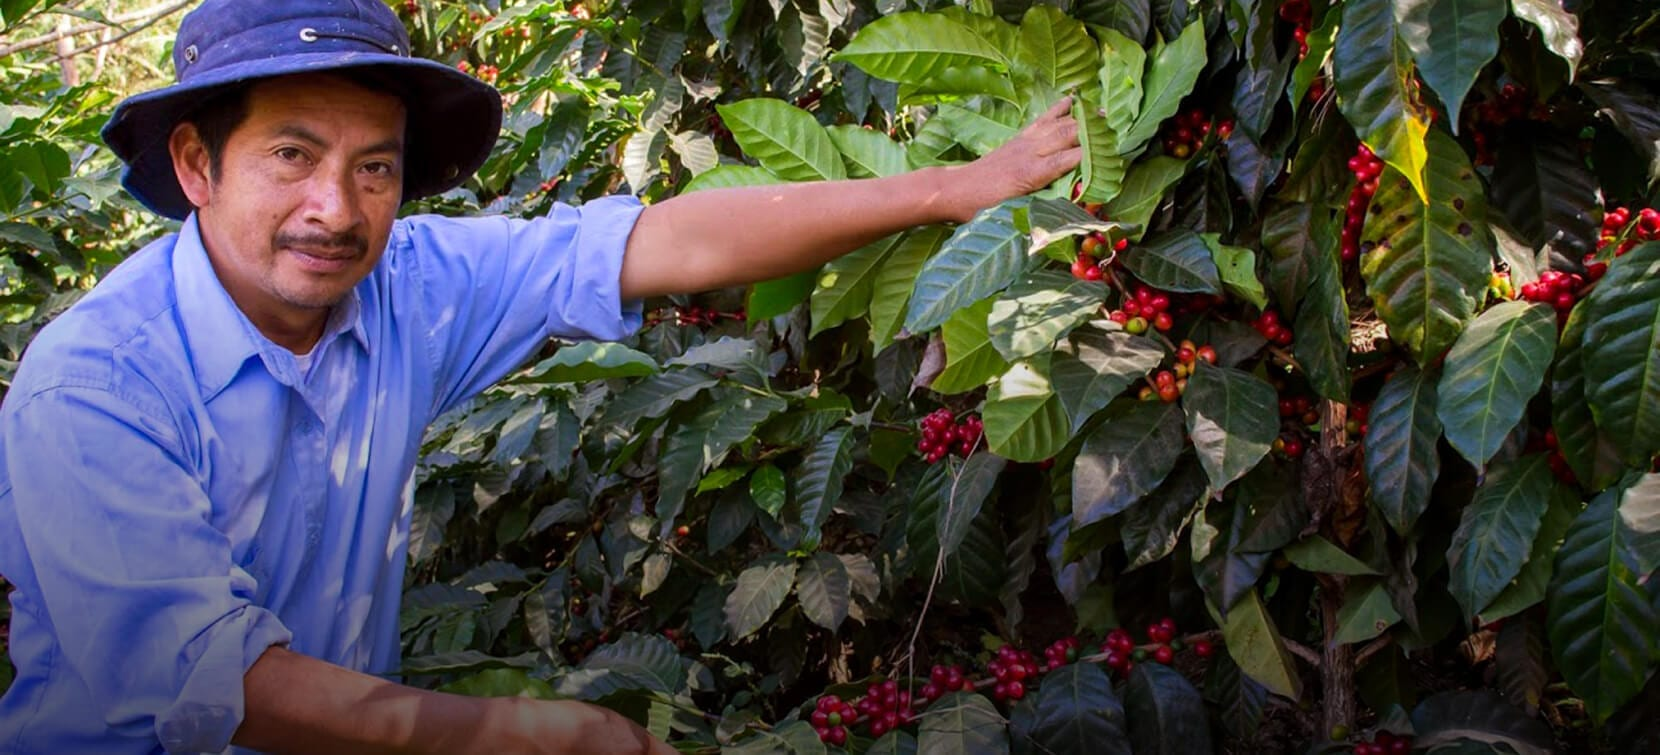 Man smiling looking at coffee plants